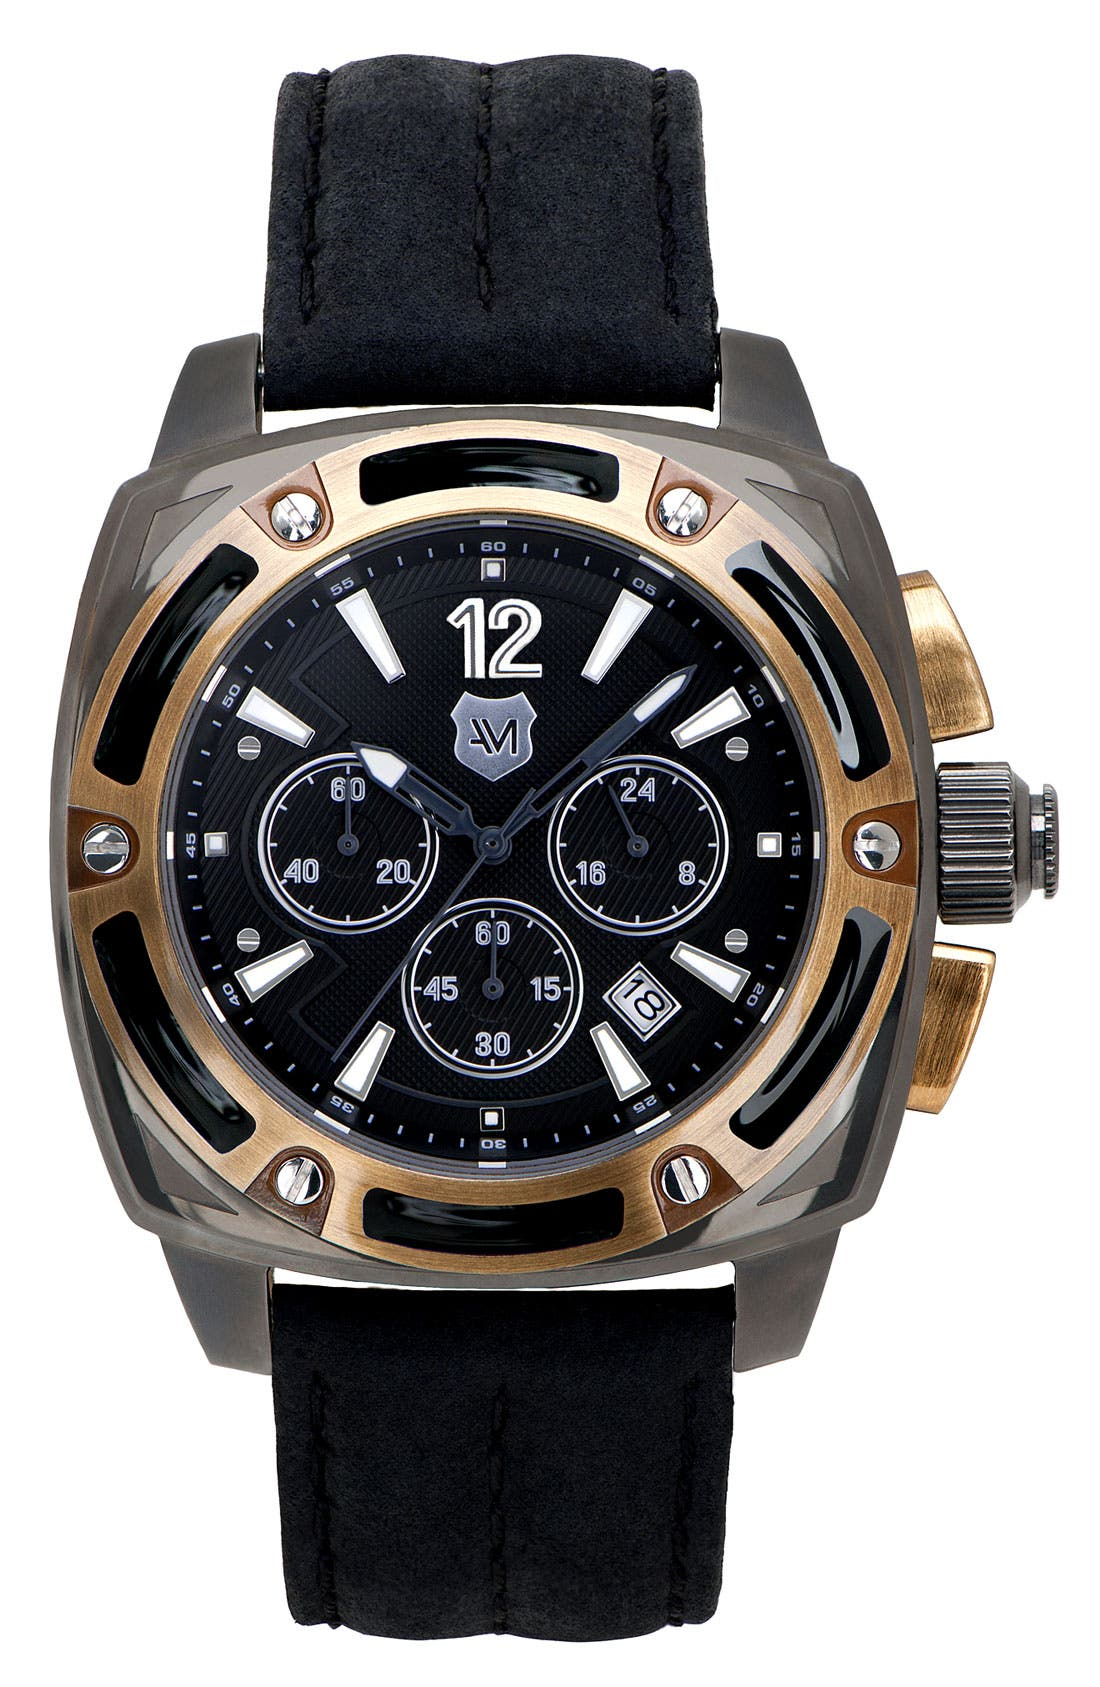 Alternate Image 1 Selected - Andrew Marc Watches 'G-III Bomber' Chronograph Watch, 46mm